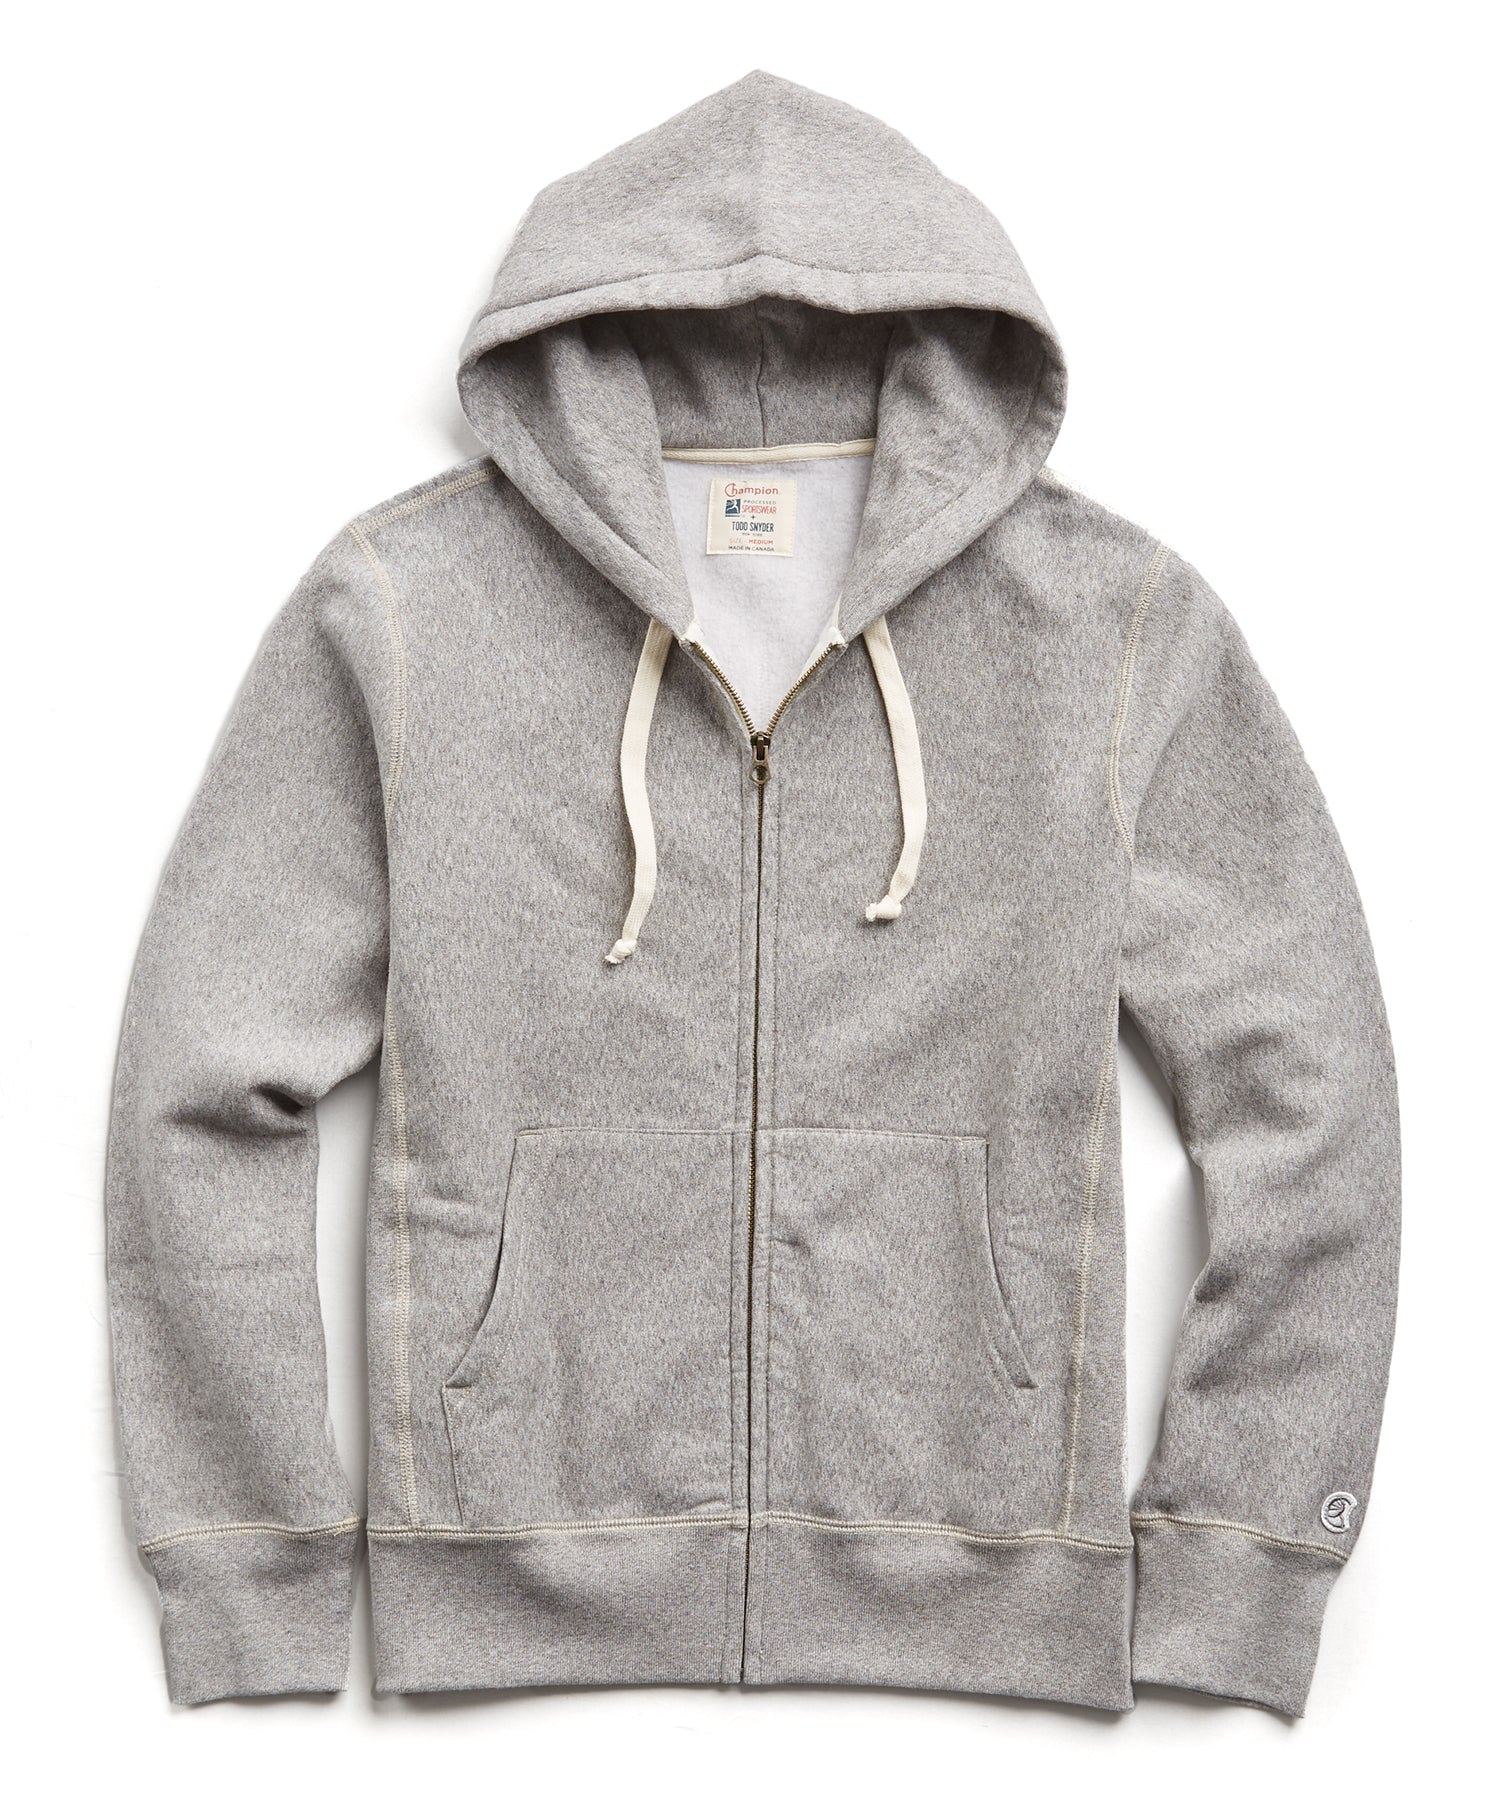 Fleece Full Zip Hoodie in Light Grey Mix